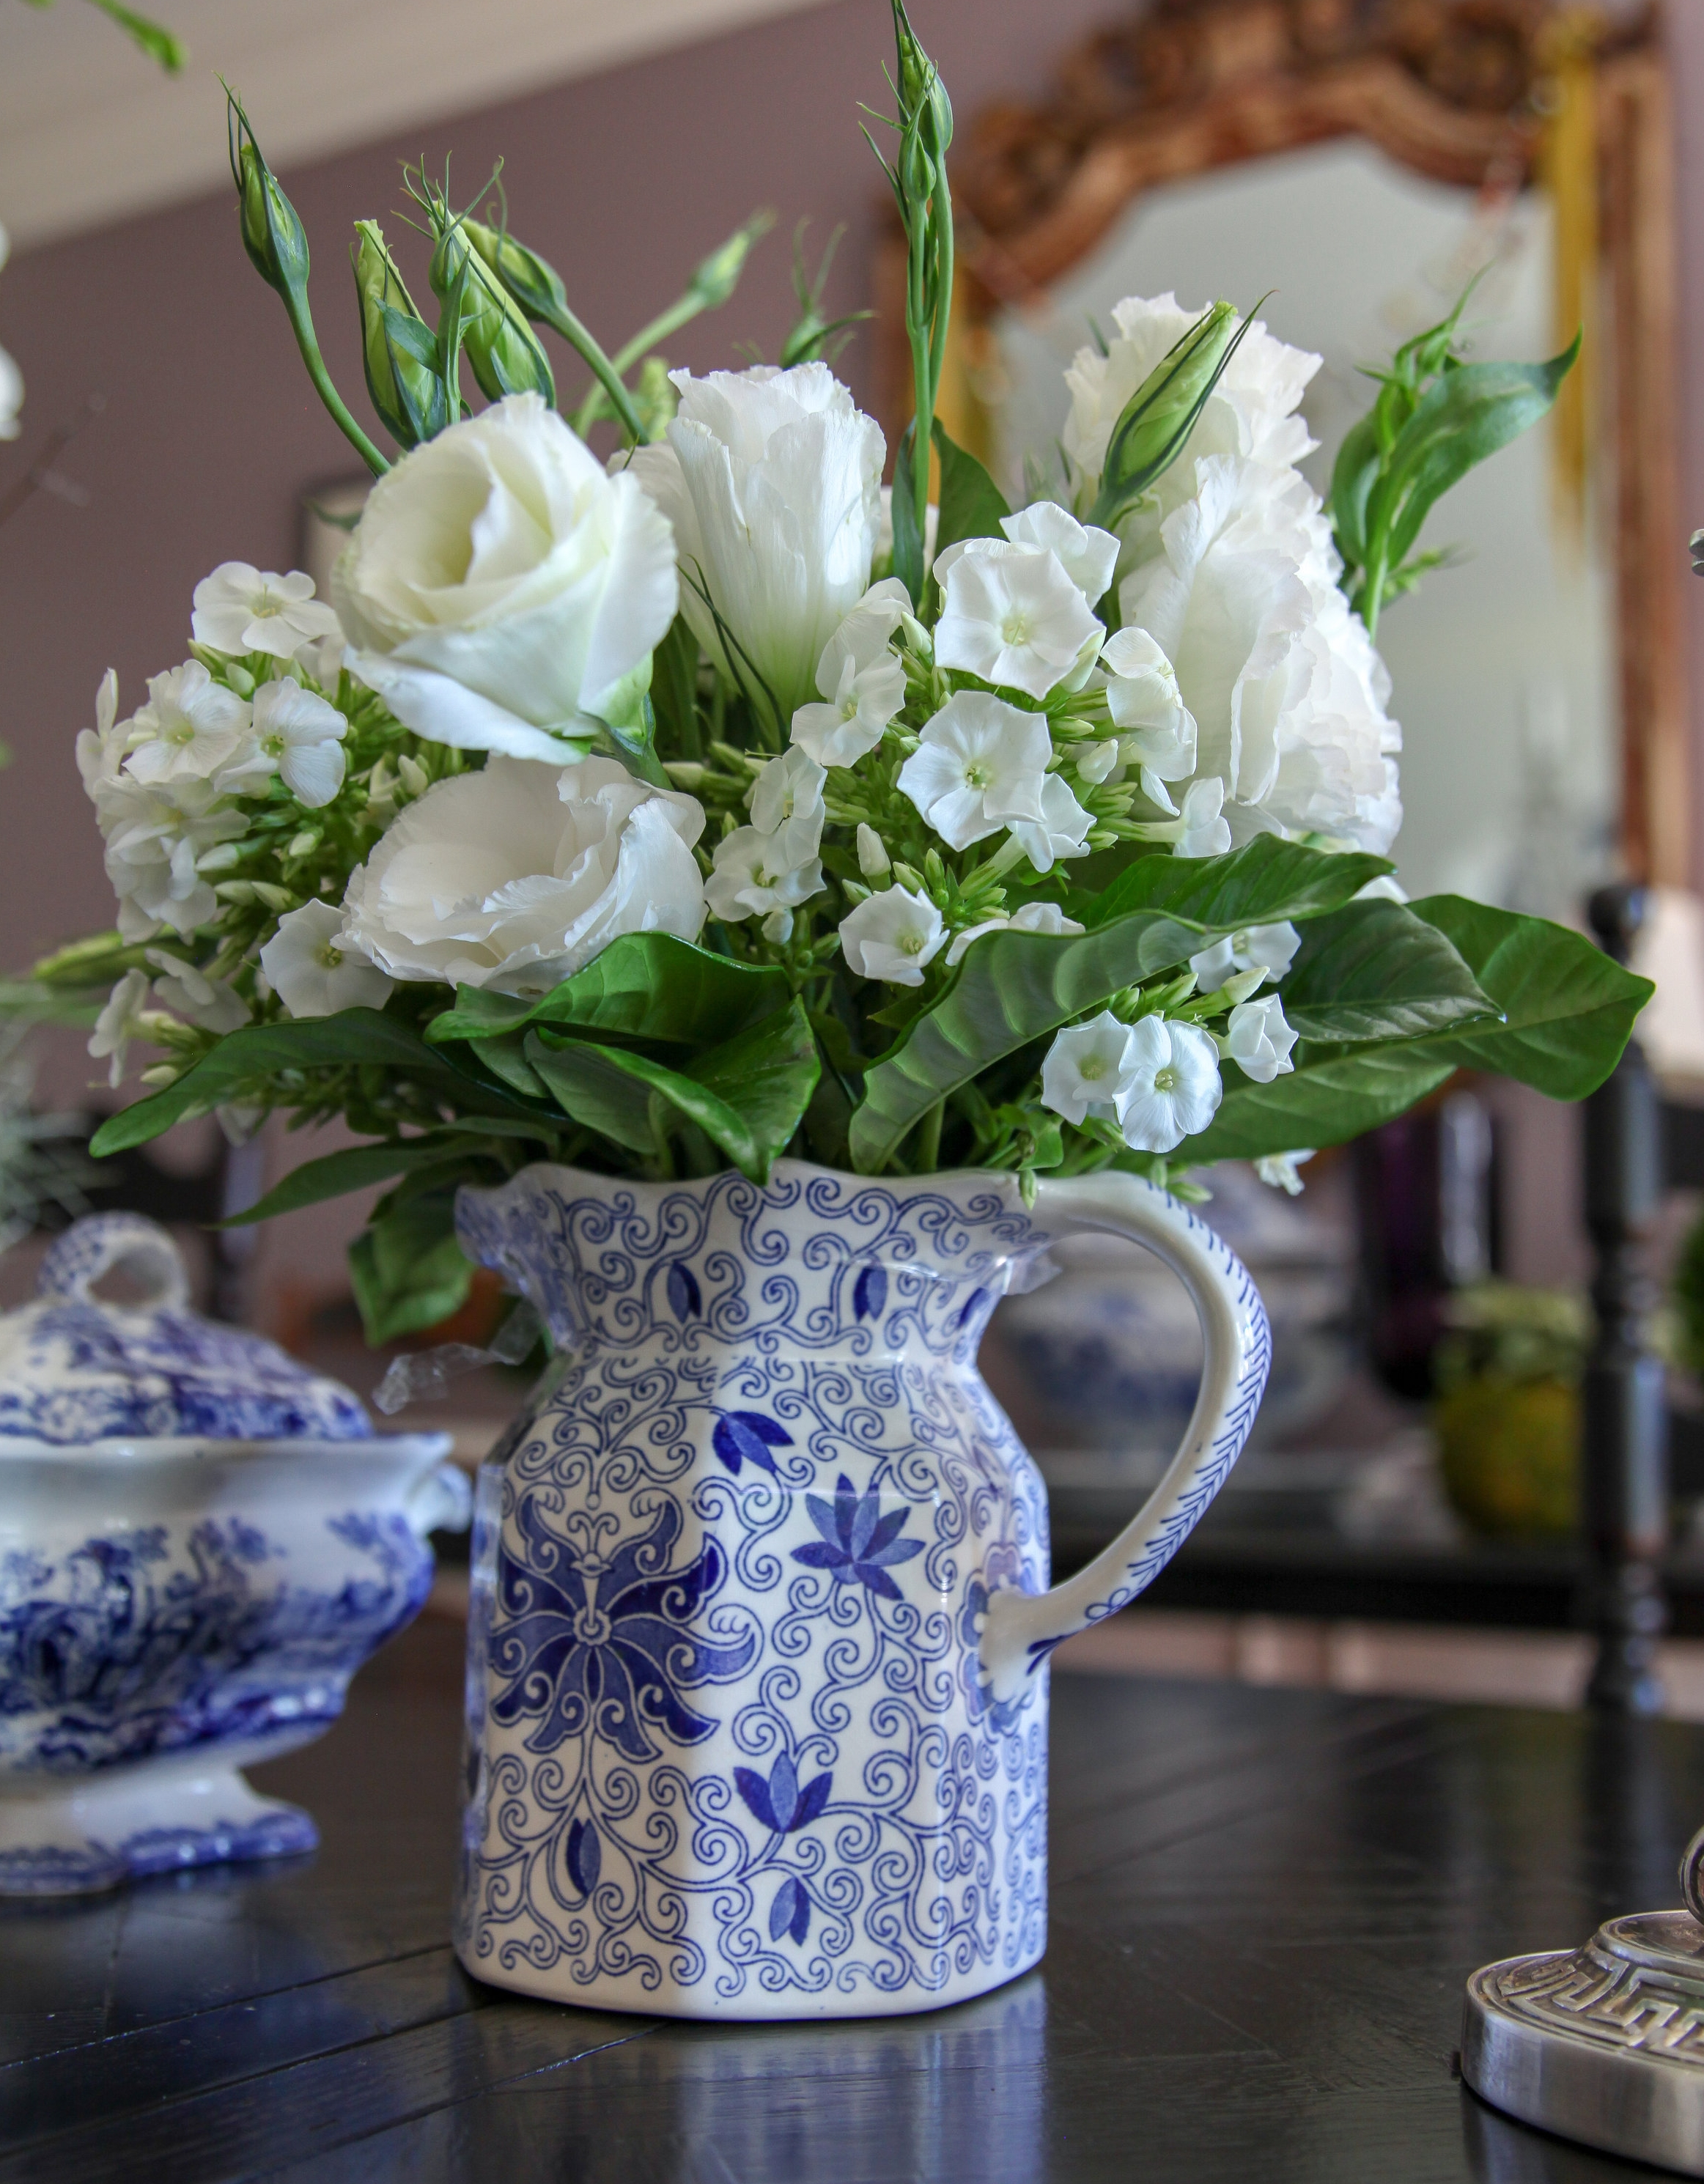 An antique English milk pitcher makes a tidy receptacle for a white and green floral arrangement.